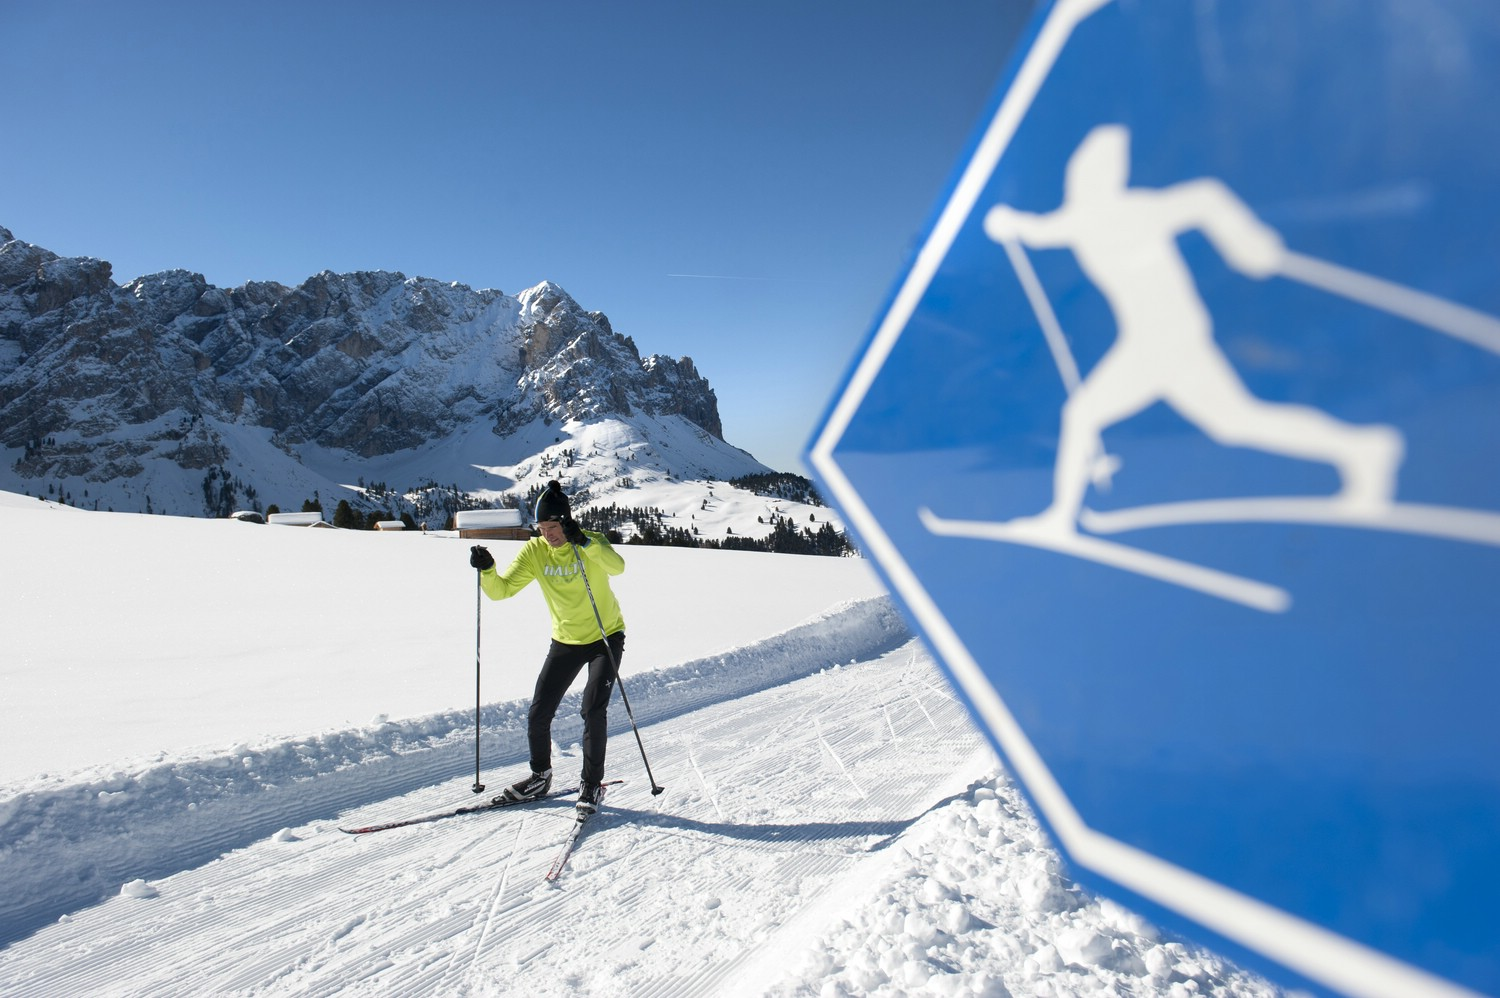 _w-cross-country-tvb-kronplatz-photo-helmuth-rier-20120222_4133_wuerzjoch-passo-delle-erbe